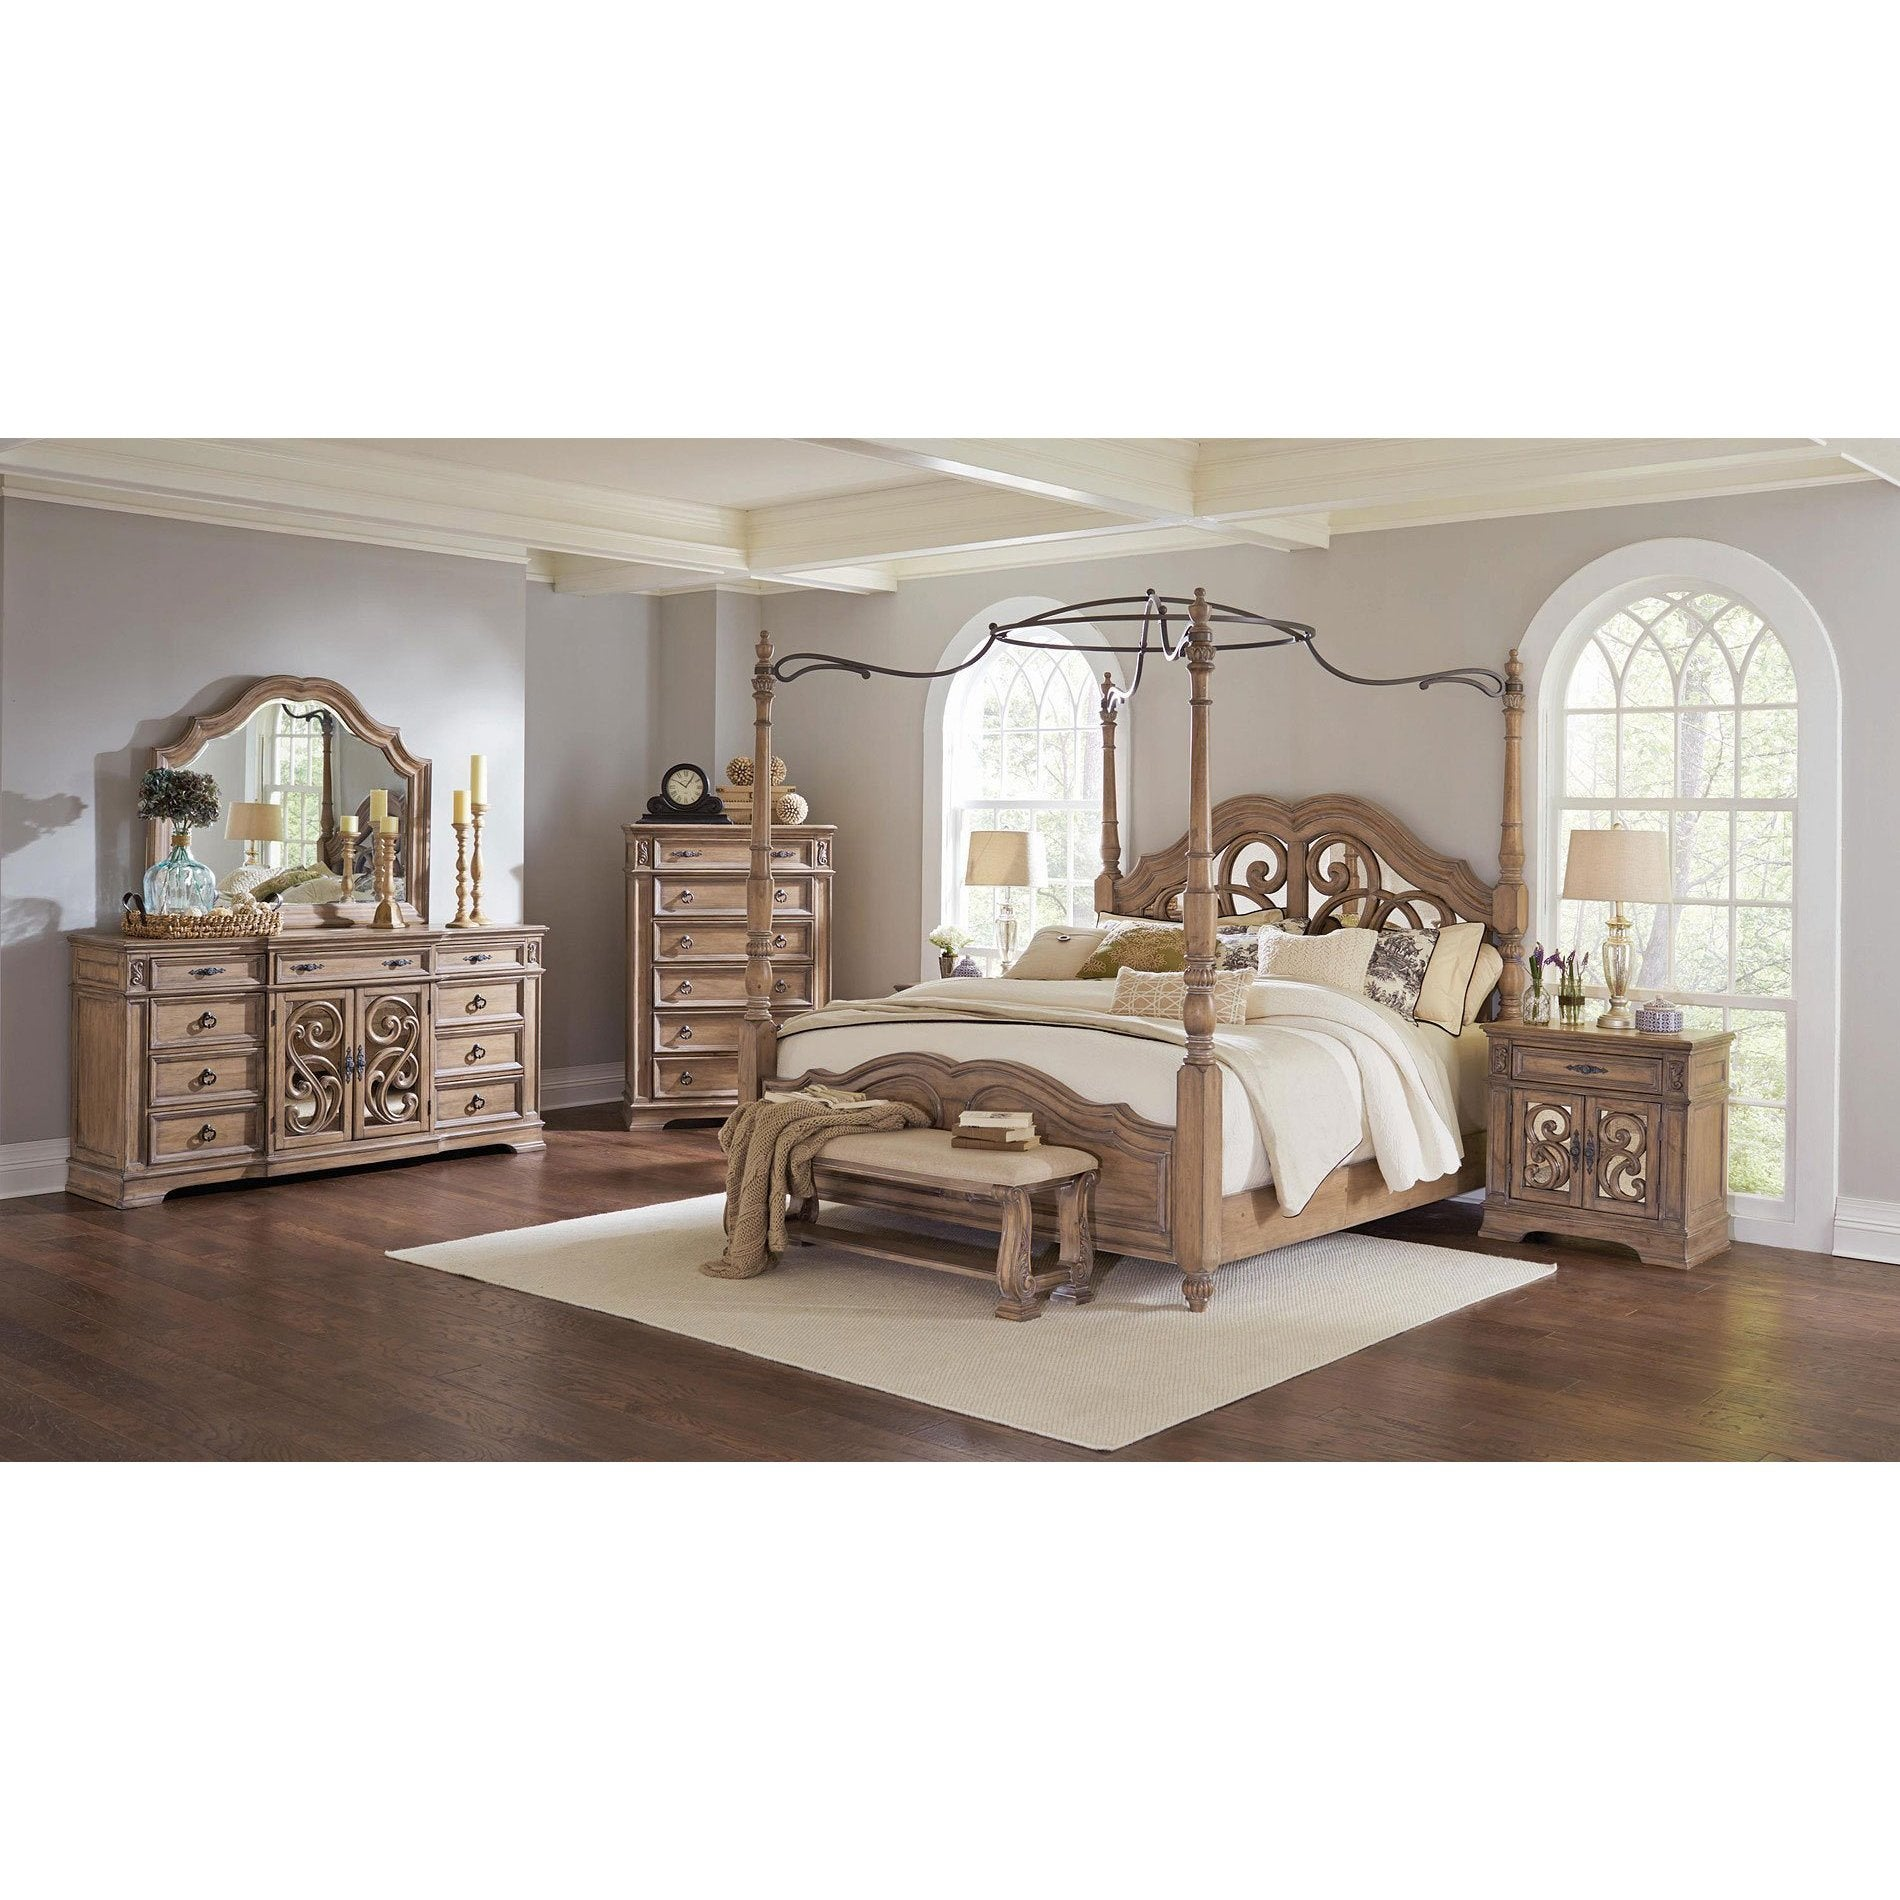 Westchester 6PC Canopy Poster Bedroom Set With 2-Door Nightstand - Free Shipping Today - Overstock.com - 24168386  sc 1 st  Overstock & Westchester 6PC Canopy Poster Bedroom Set With 2-Door Nightstand ...